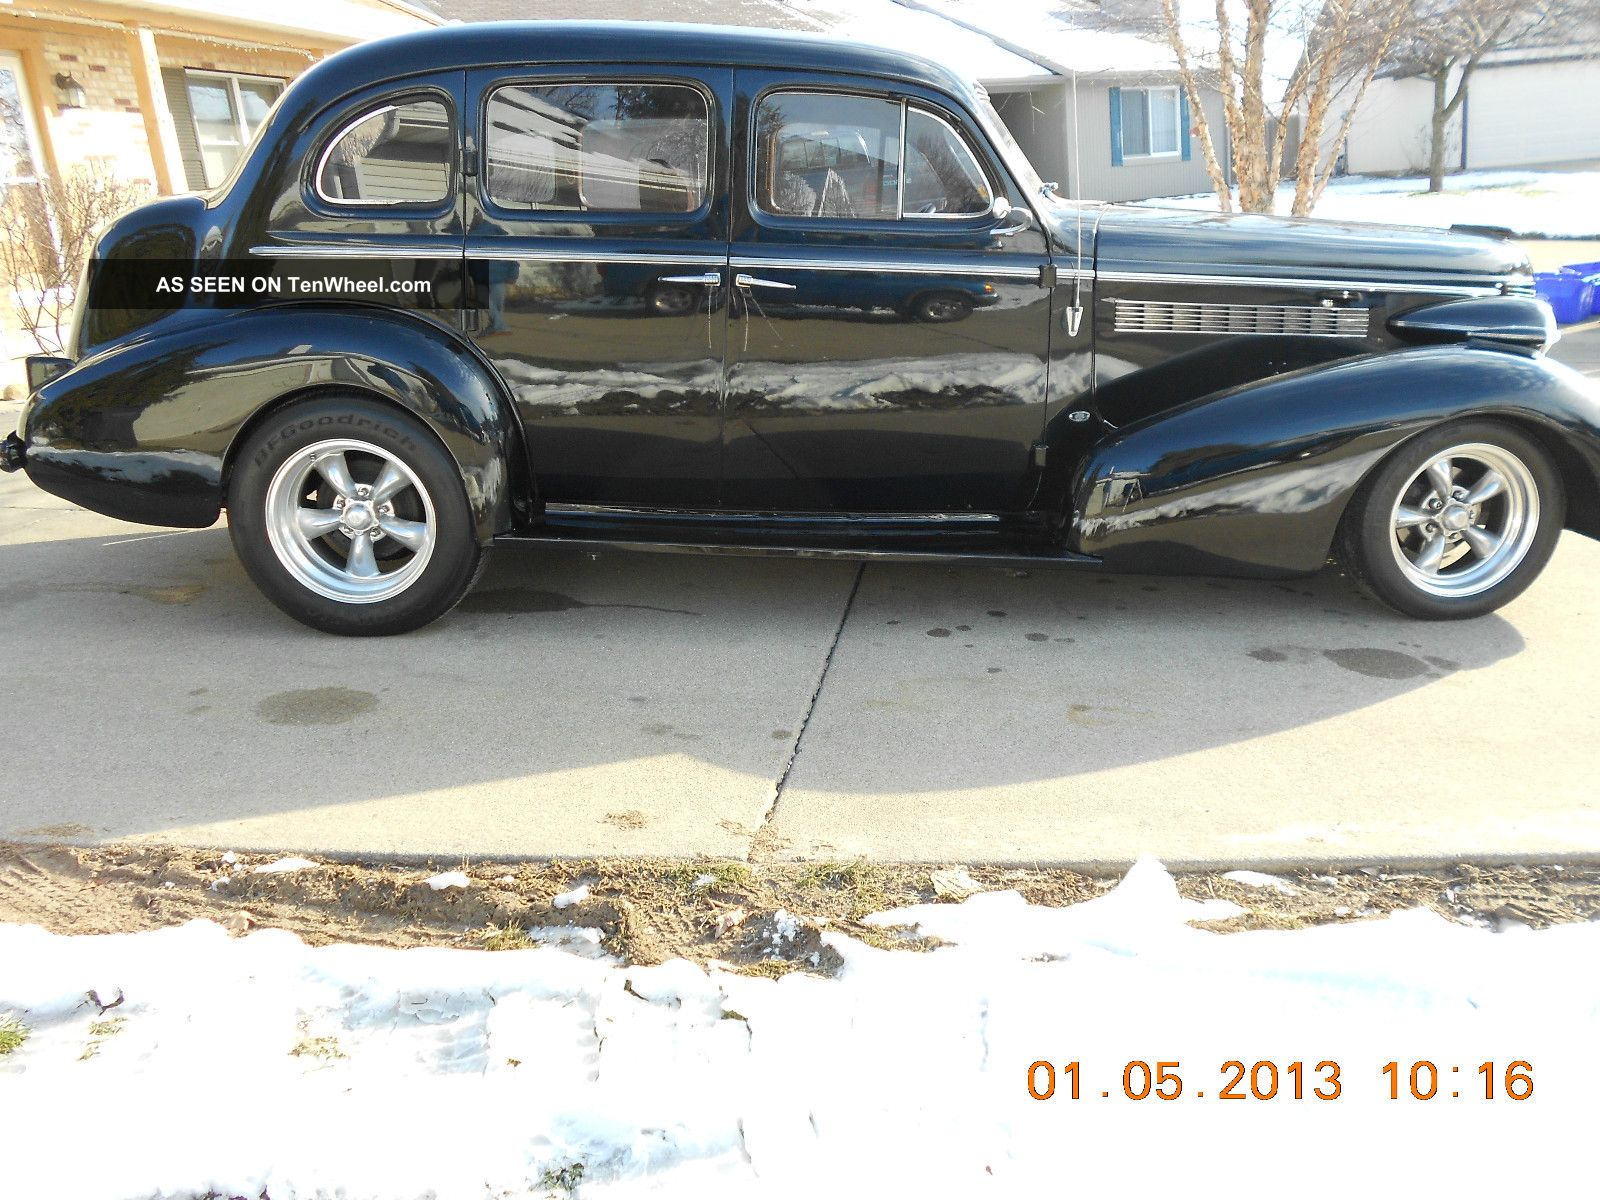 1937 Buick Special - 4 Door Sedan - Black - Modified - Streetrod Driver - Not Trailered Other photo